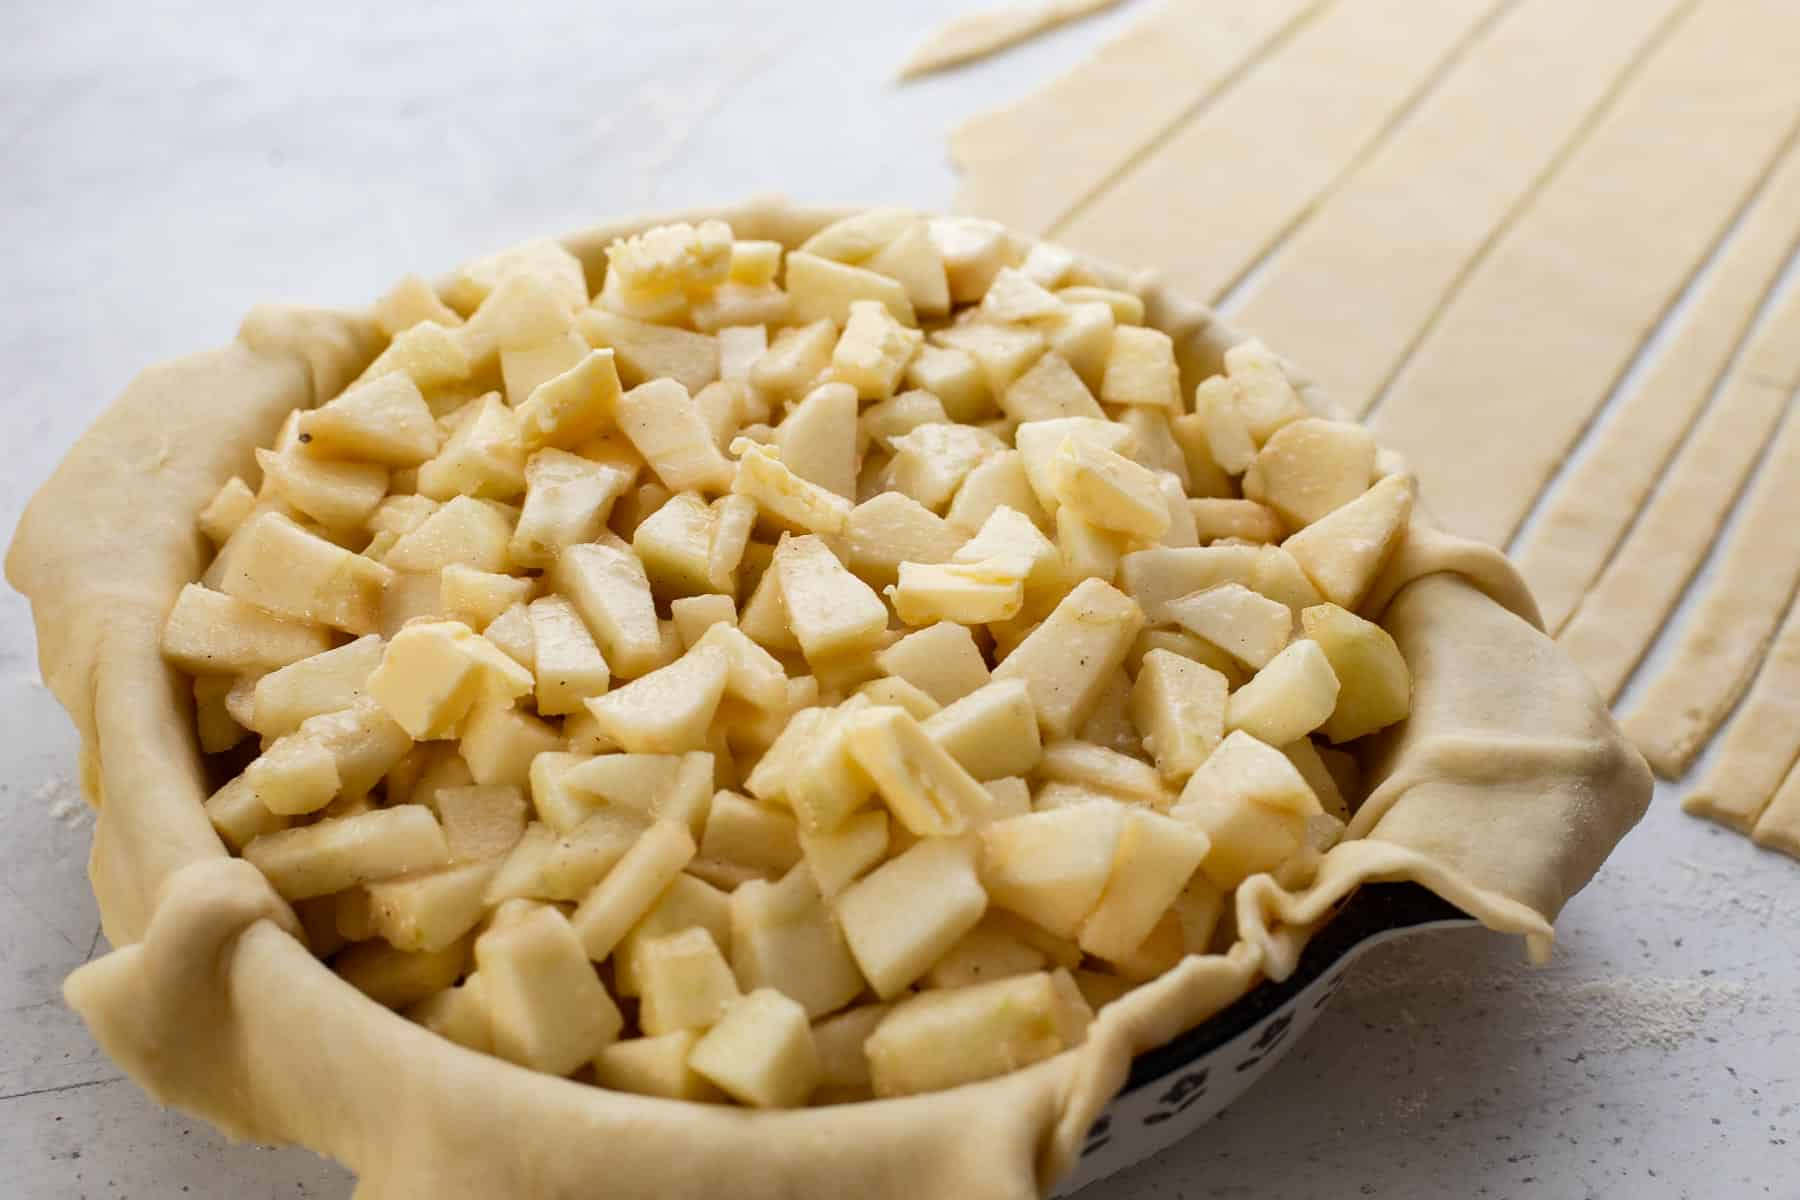 diced up apples in pie crust